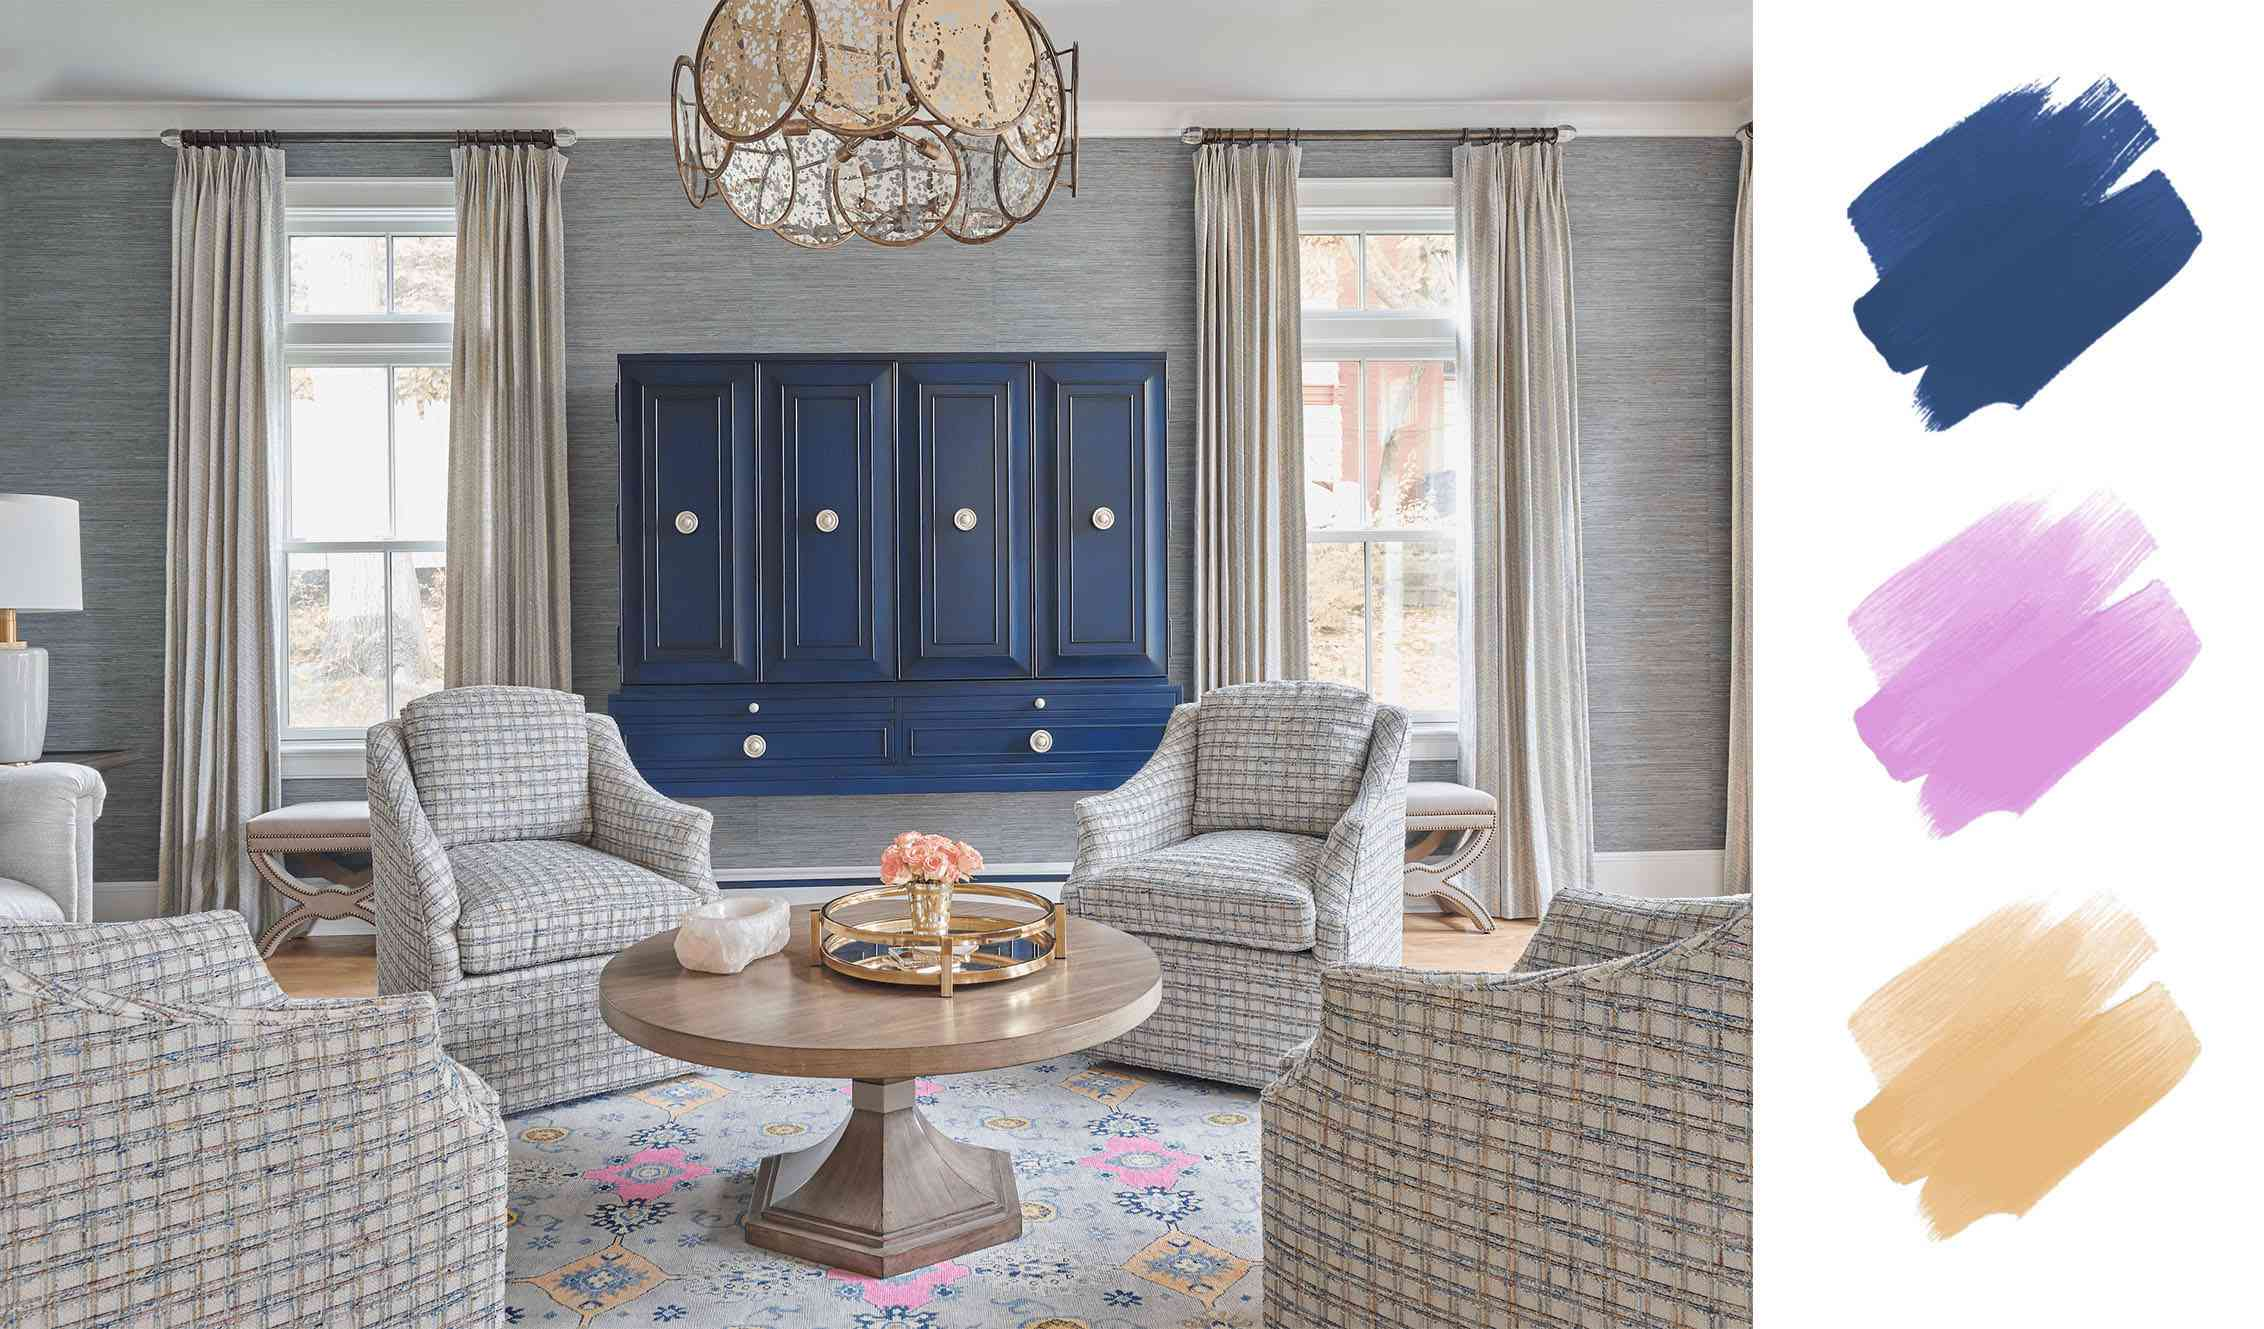 best interior color schemes - blue and neons